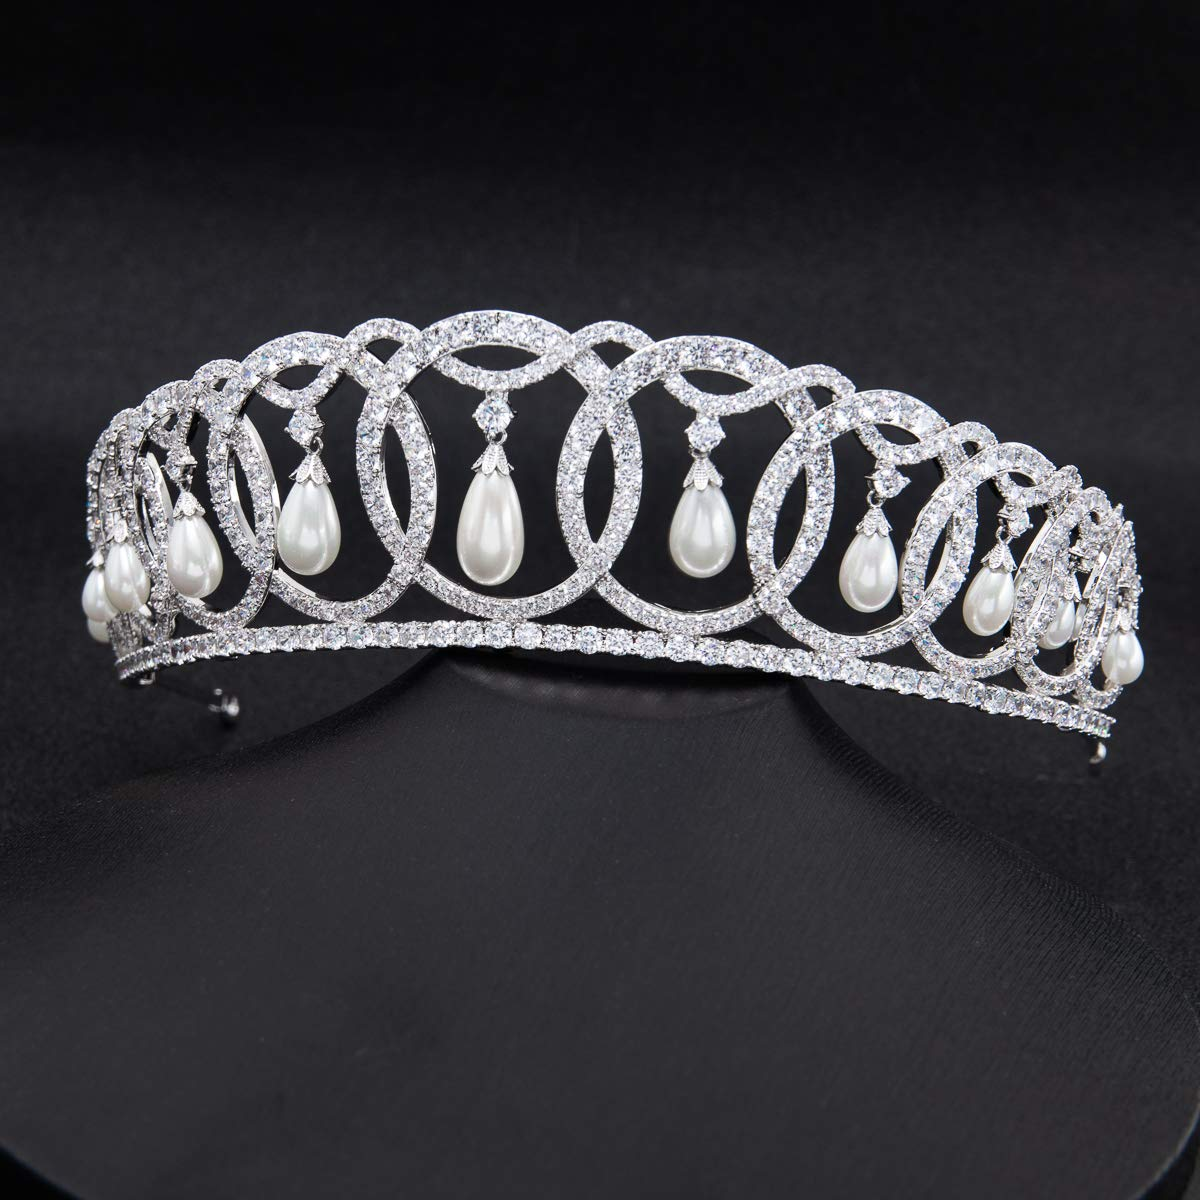 SepBridals Classic Cubic Zirconia CZ Pearls Wedding Bridal Tiara Crown Diadem Women Hair Accessories CH10223 by SEPBRIDALS (Image #6)